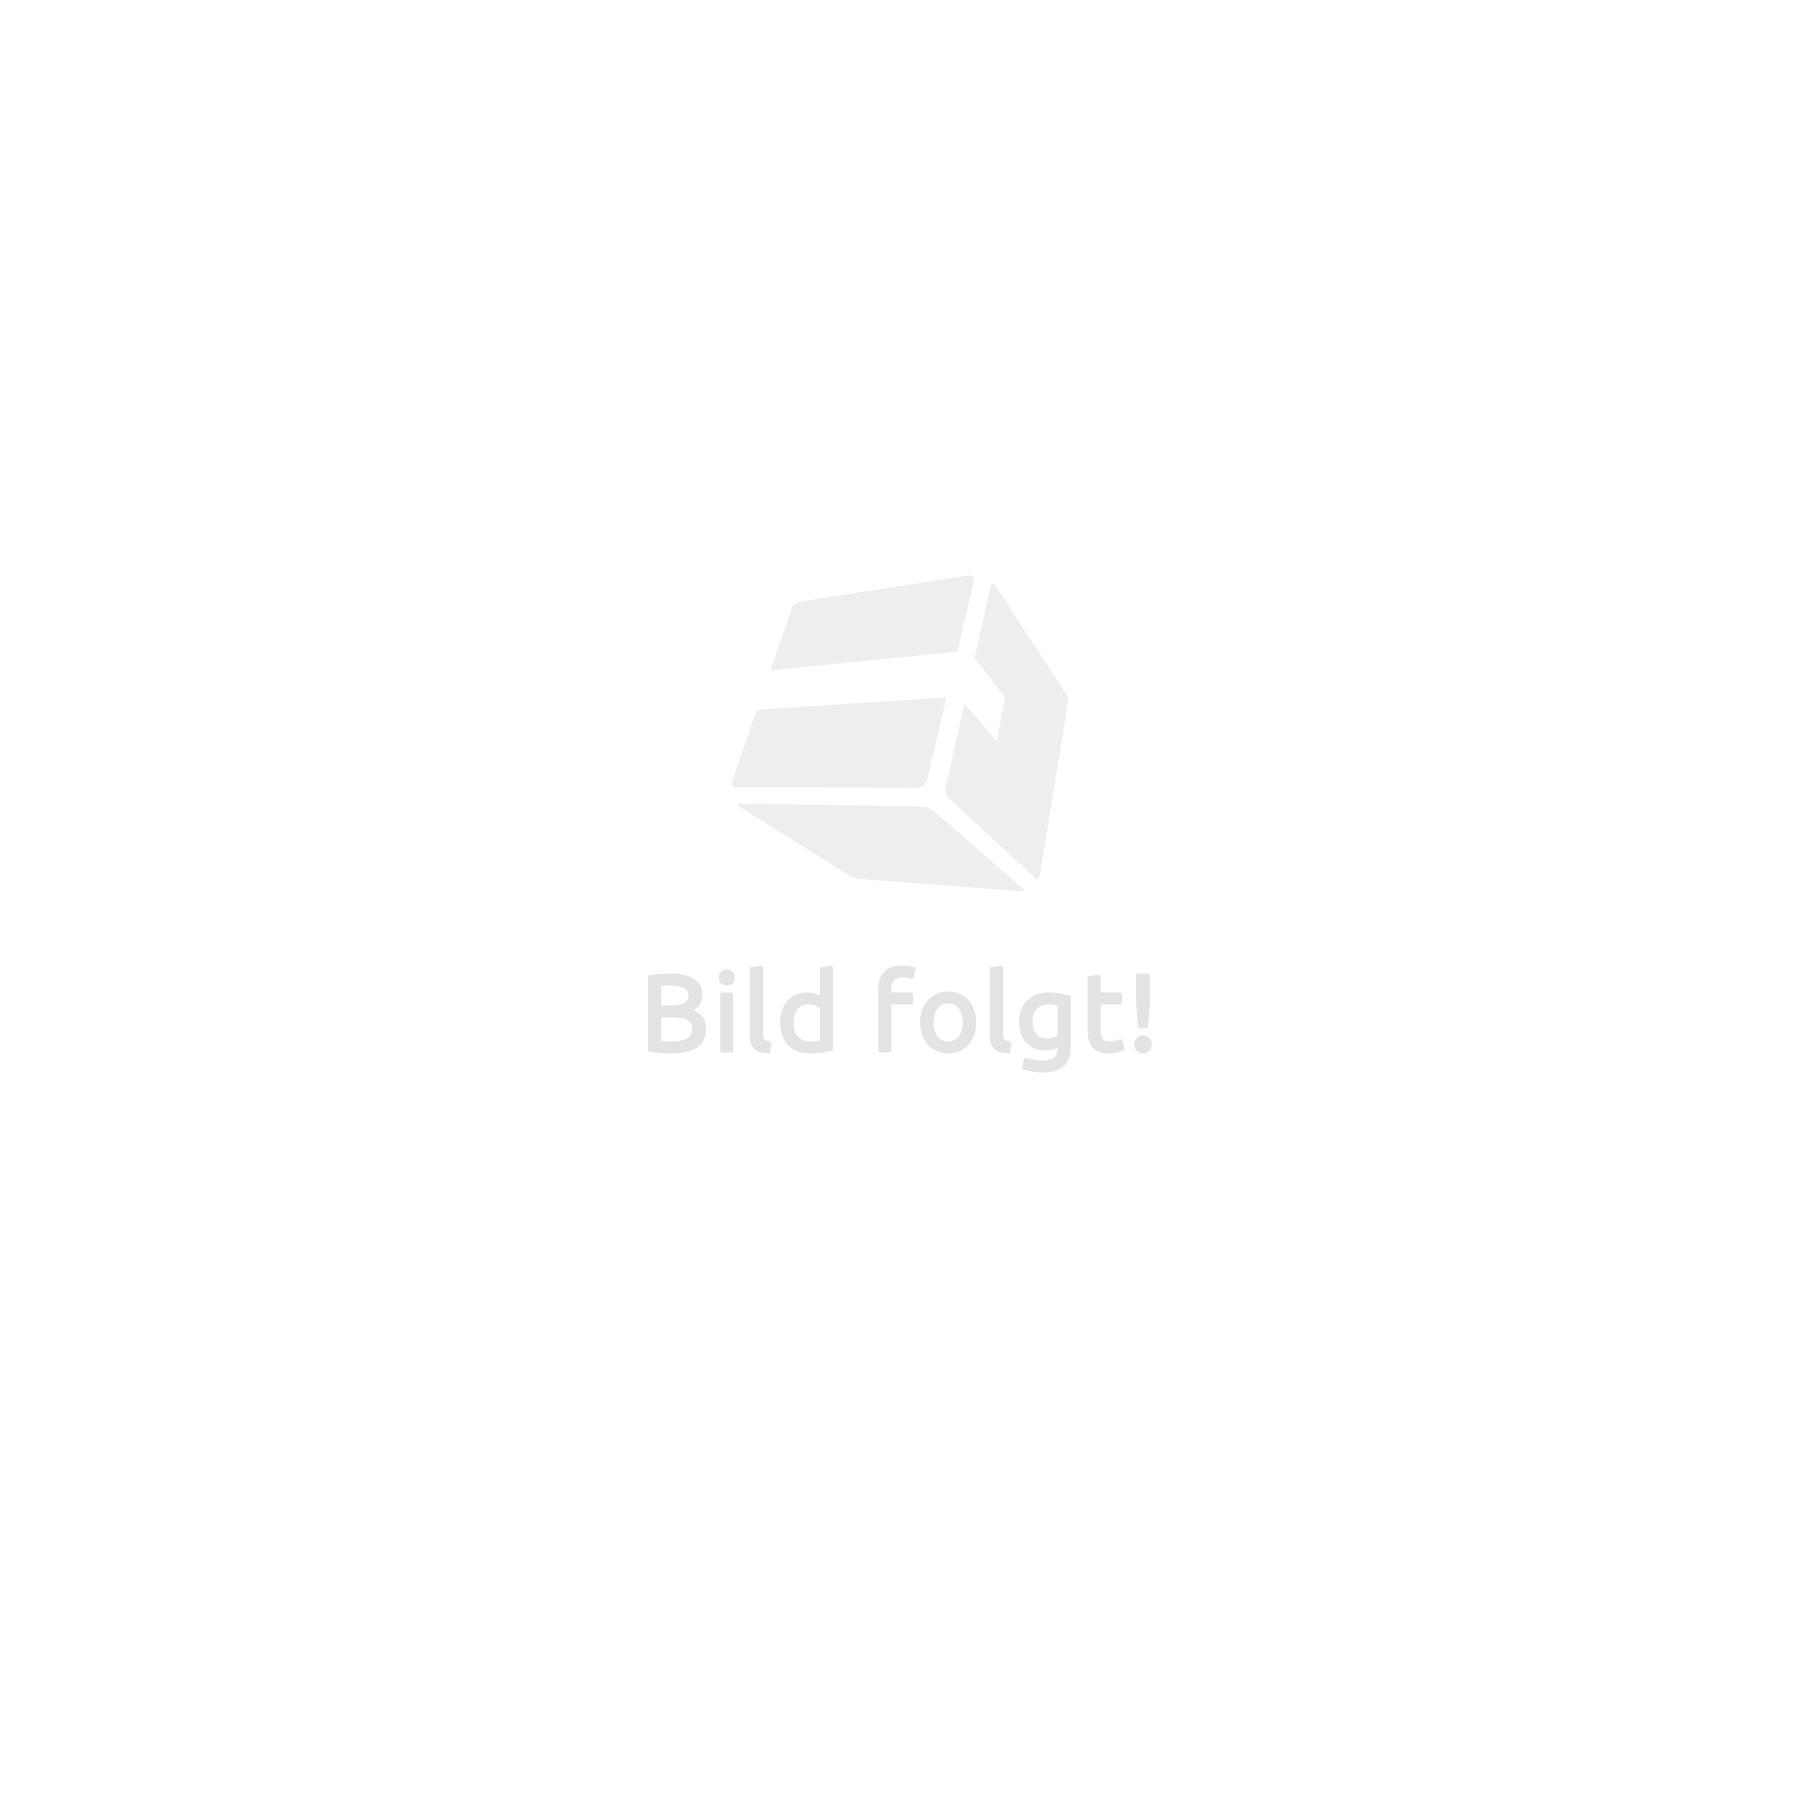 Tabouret de bar lot de 2, réglable 62,5 cm - 82,5 cm